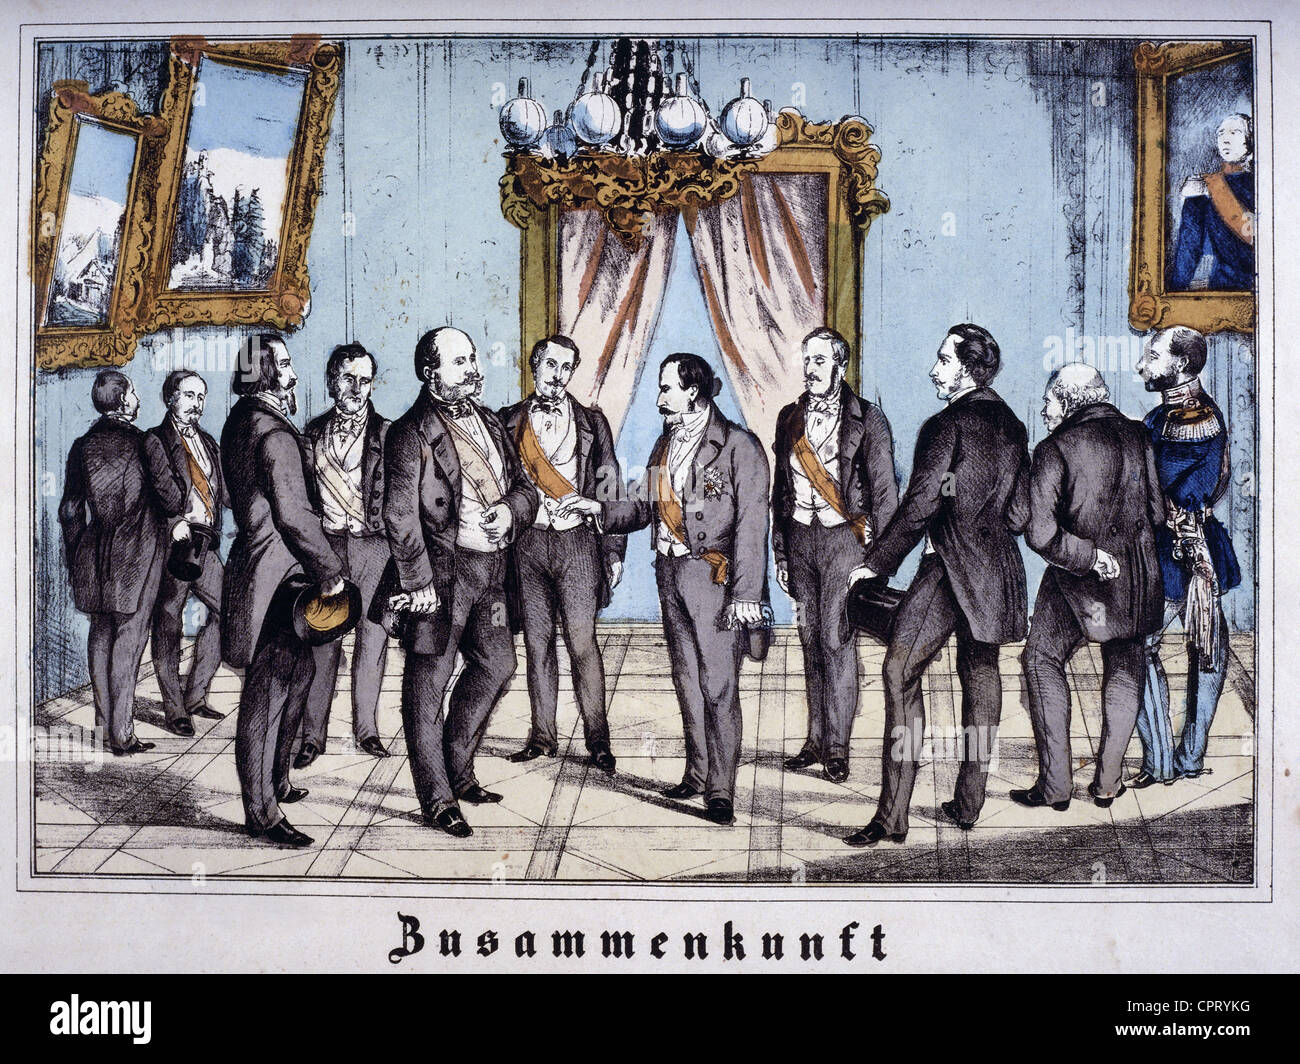 Napoleon III, 20.4.1808 - 9.1.1873, Emperor of the French 1852 - 1870, scene, meeting with Wilhelm I of Prussia, - Stock Image